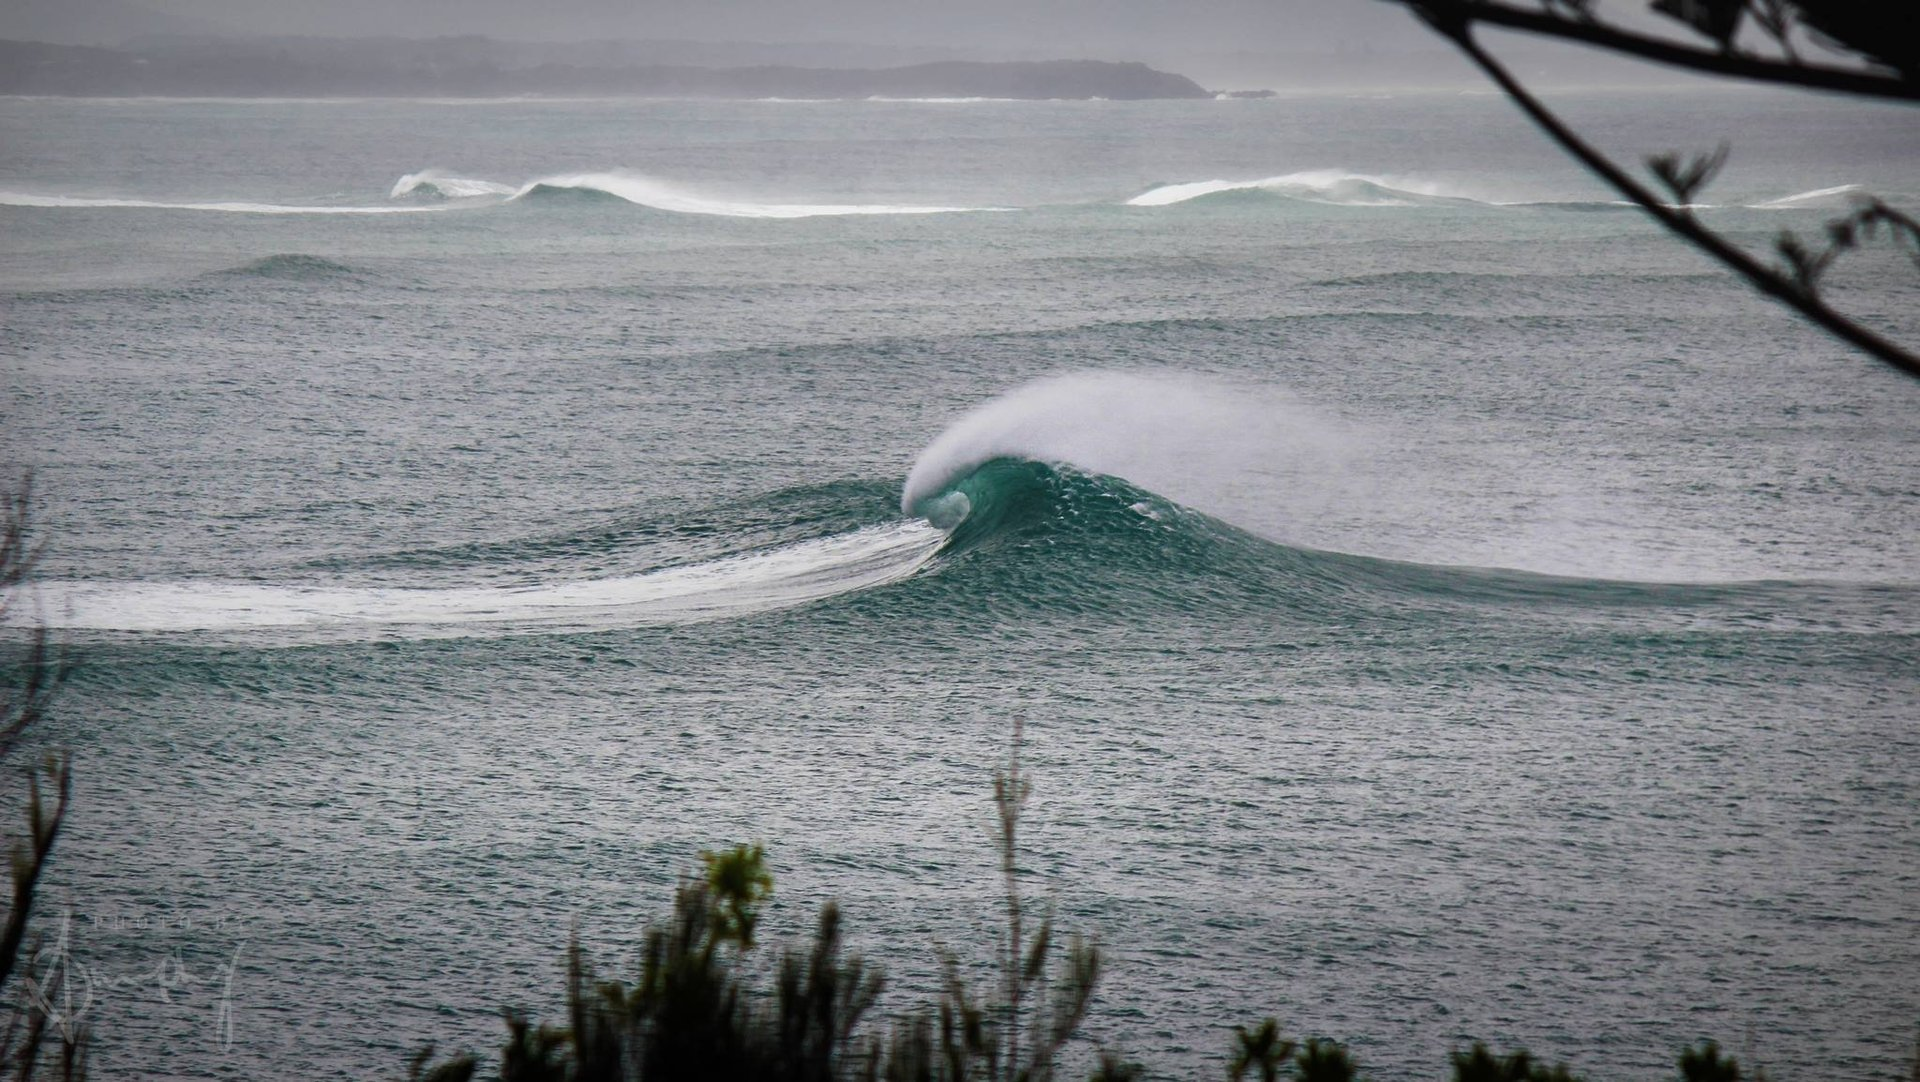 KennyG's photo of Forster